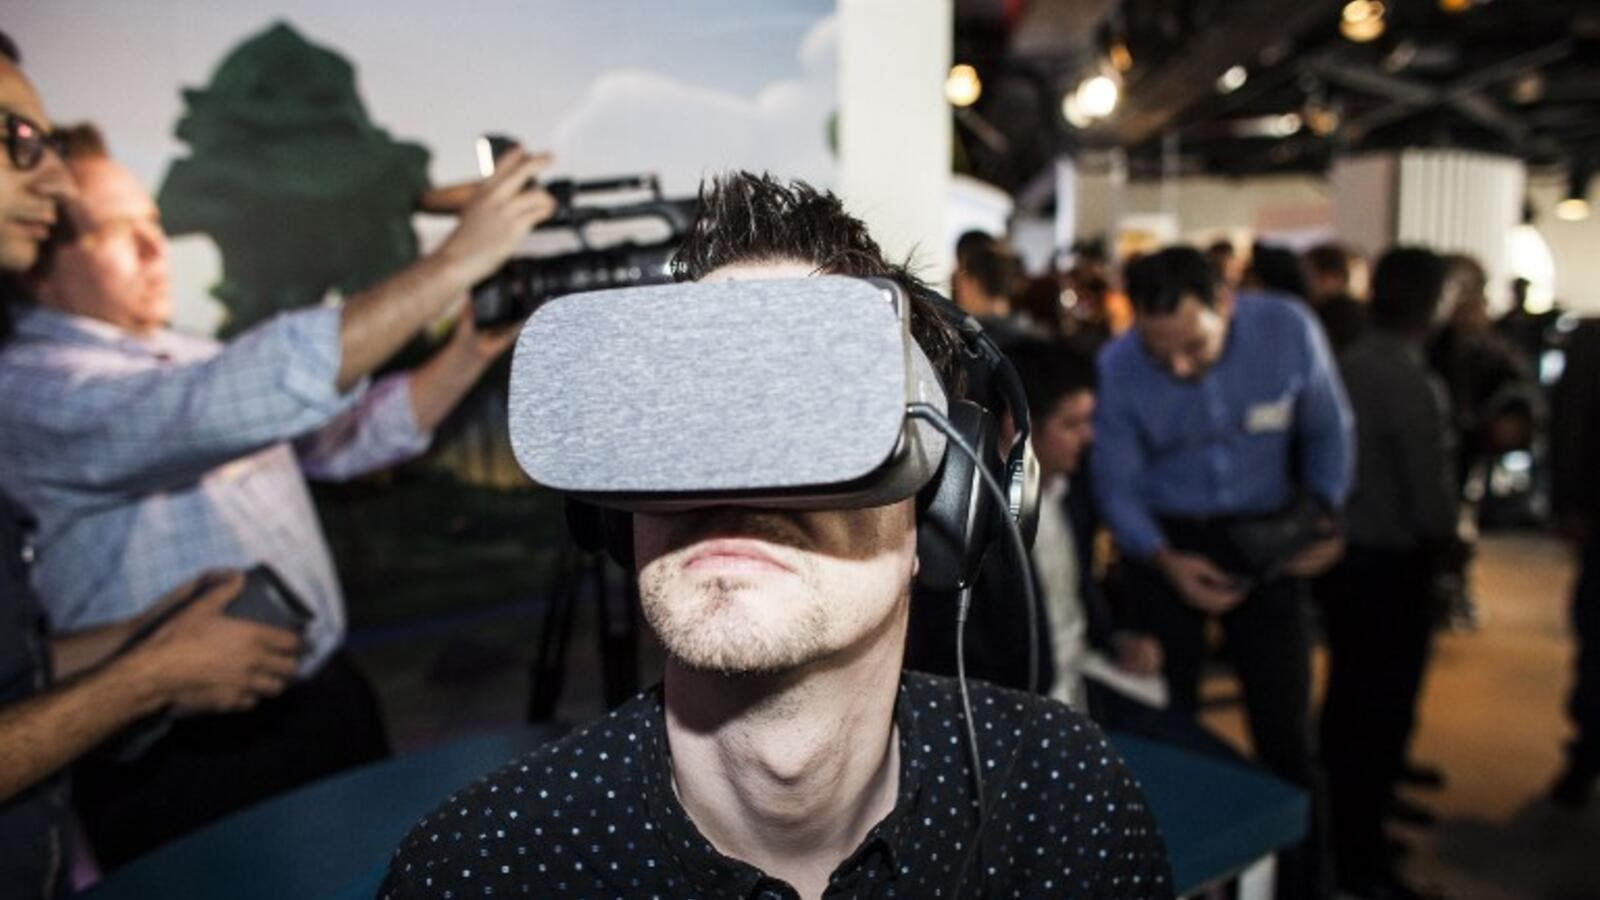 Google's Daydream mobile VR platform is set to rival Samsung's Gear VR. (AFP/Ramin Talaie)